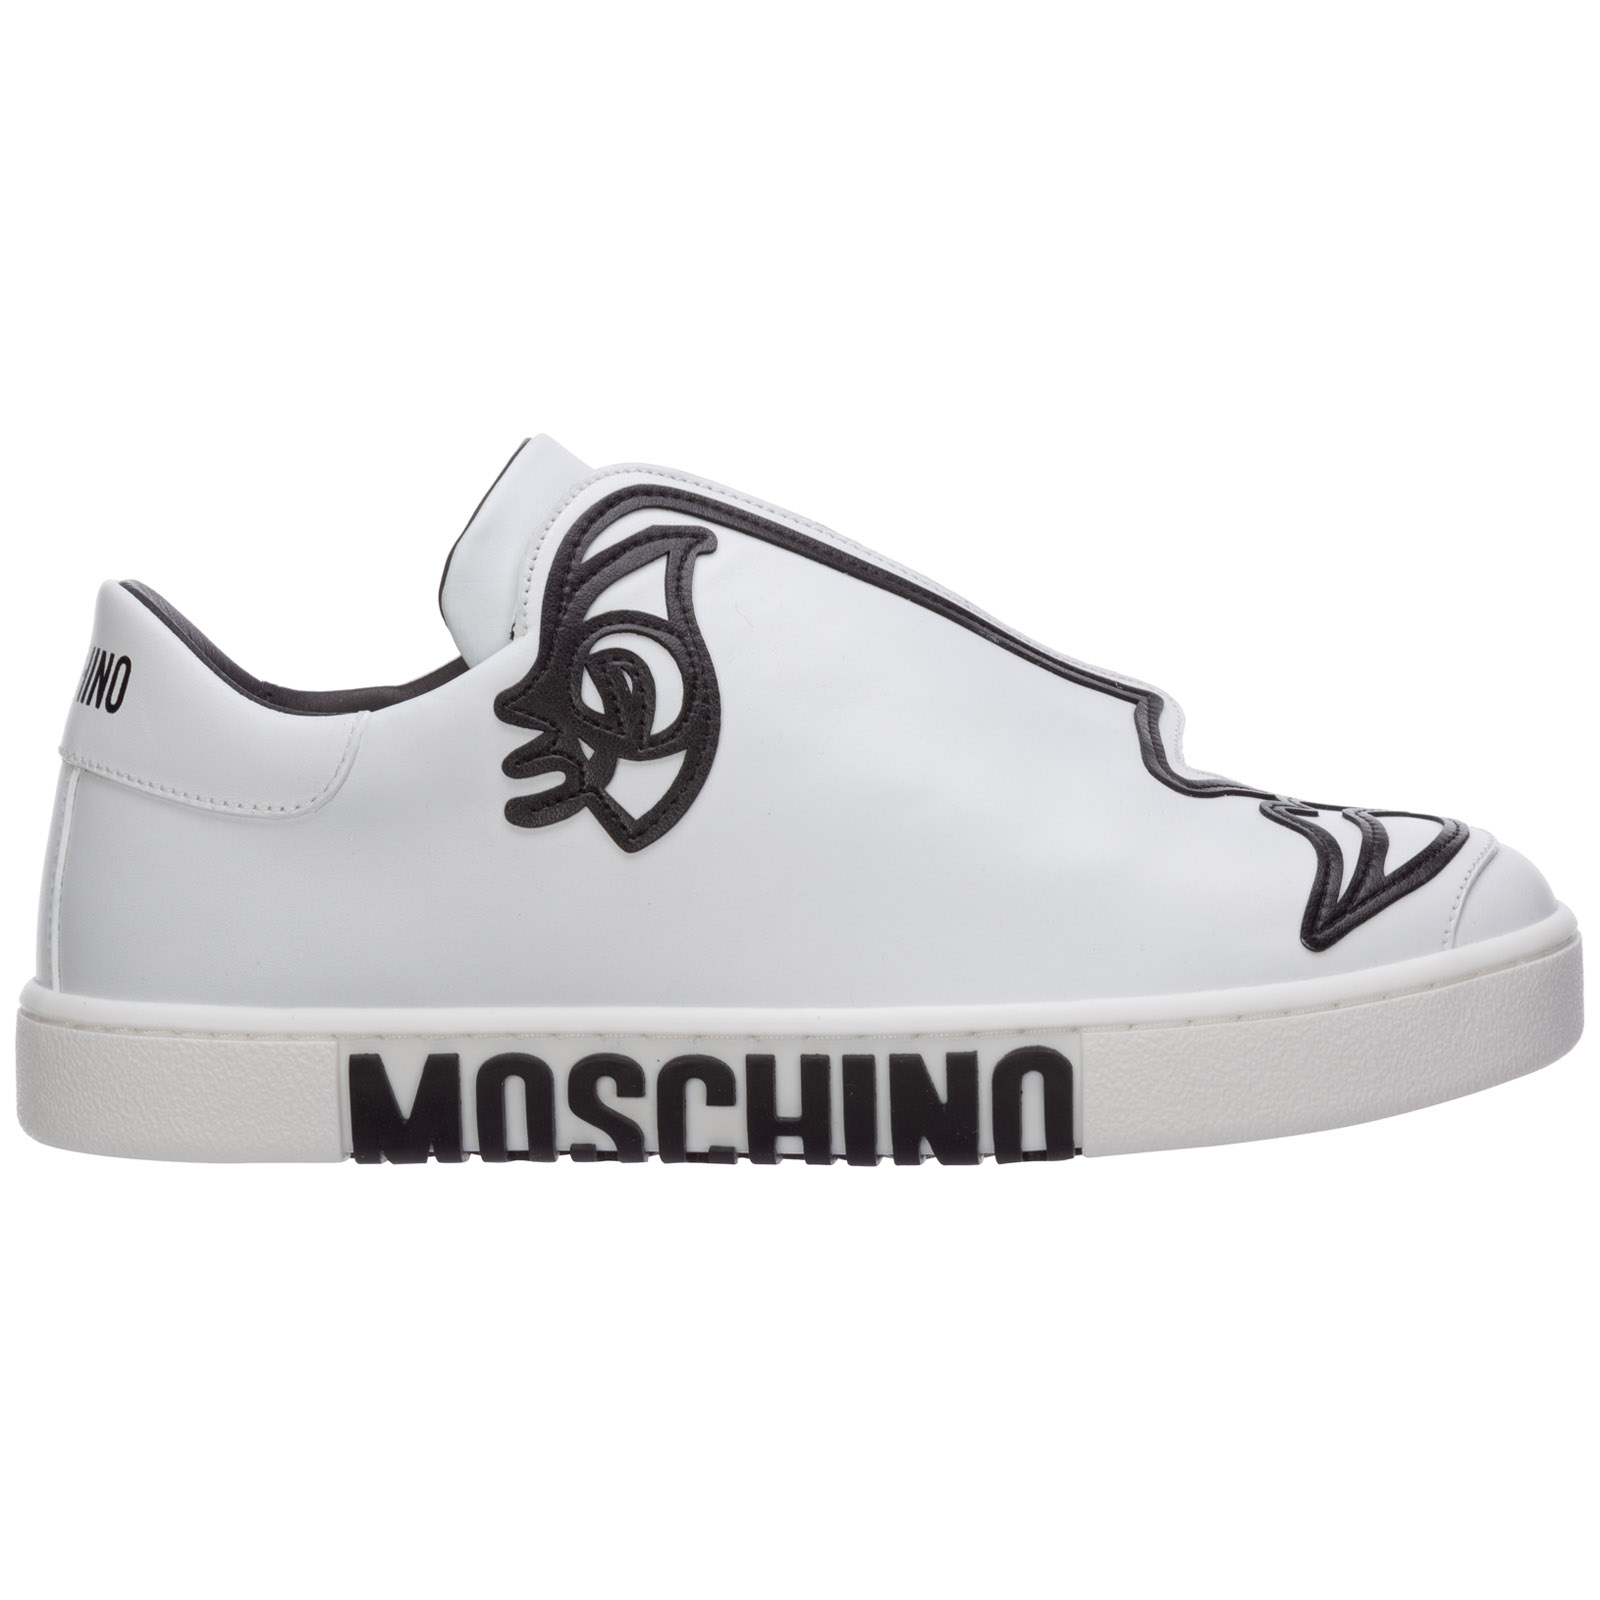 Sneakers Moschino woman's drawing